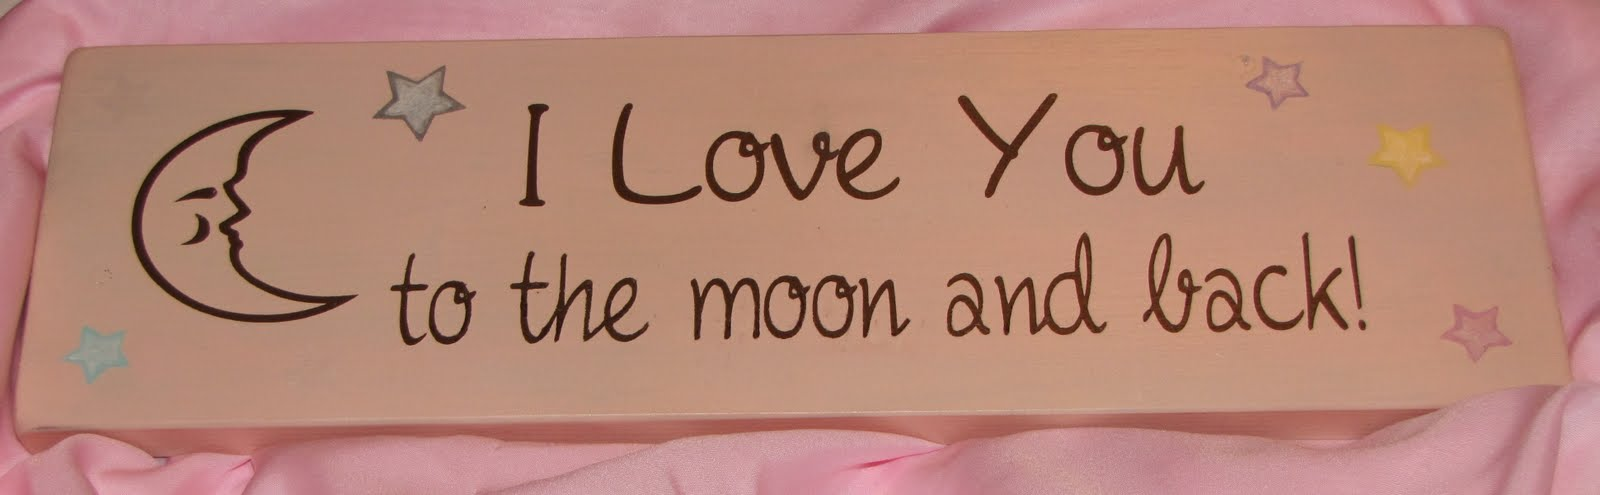 I love you to the moon and back meaning 9062506 - joyfulvoices.info